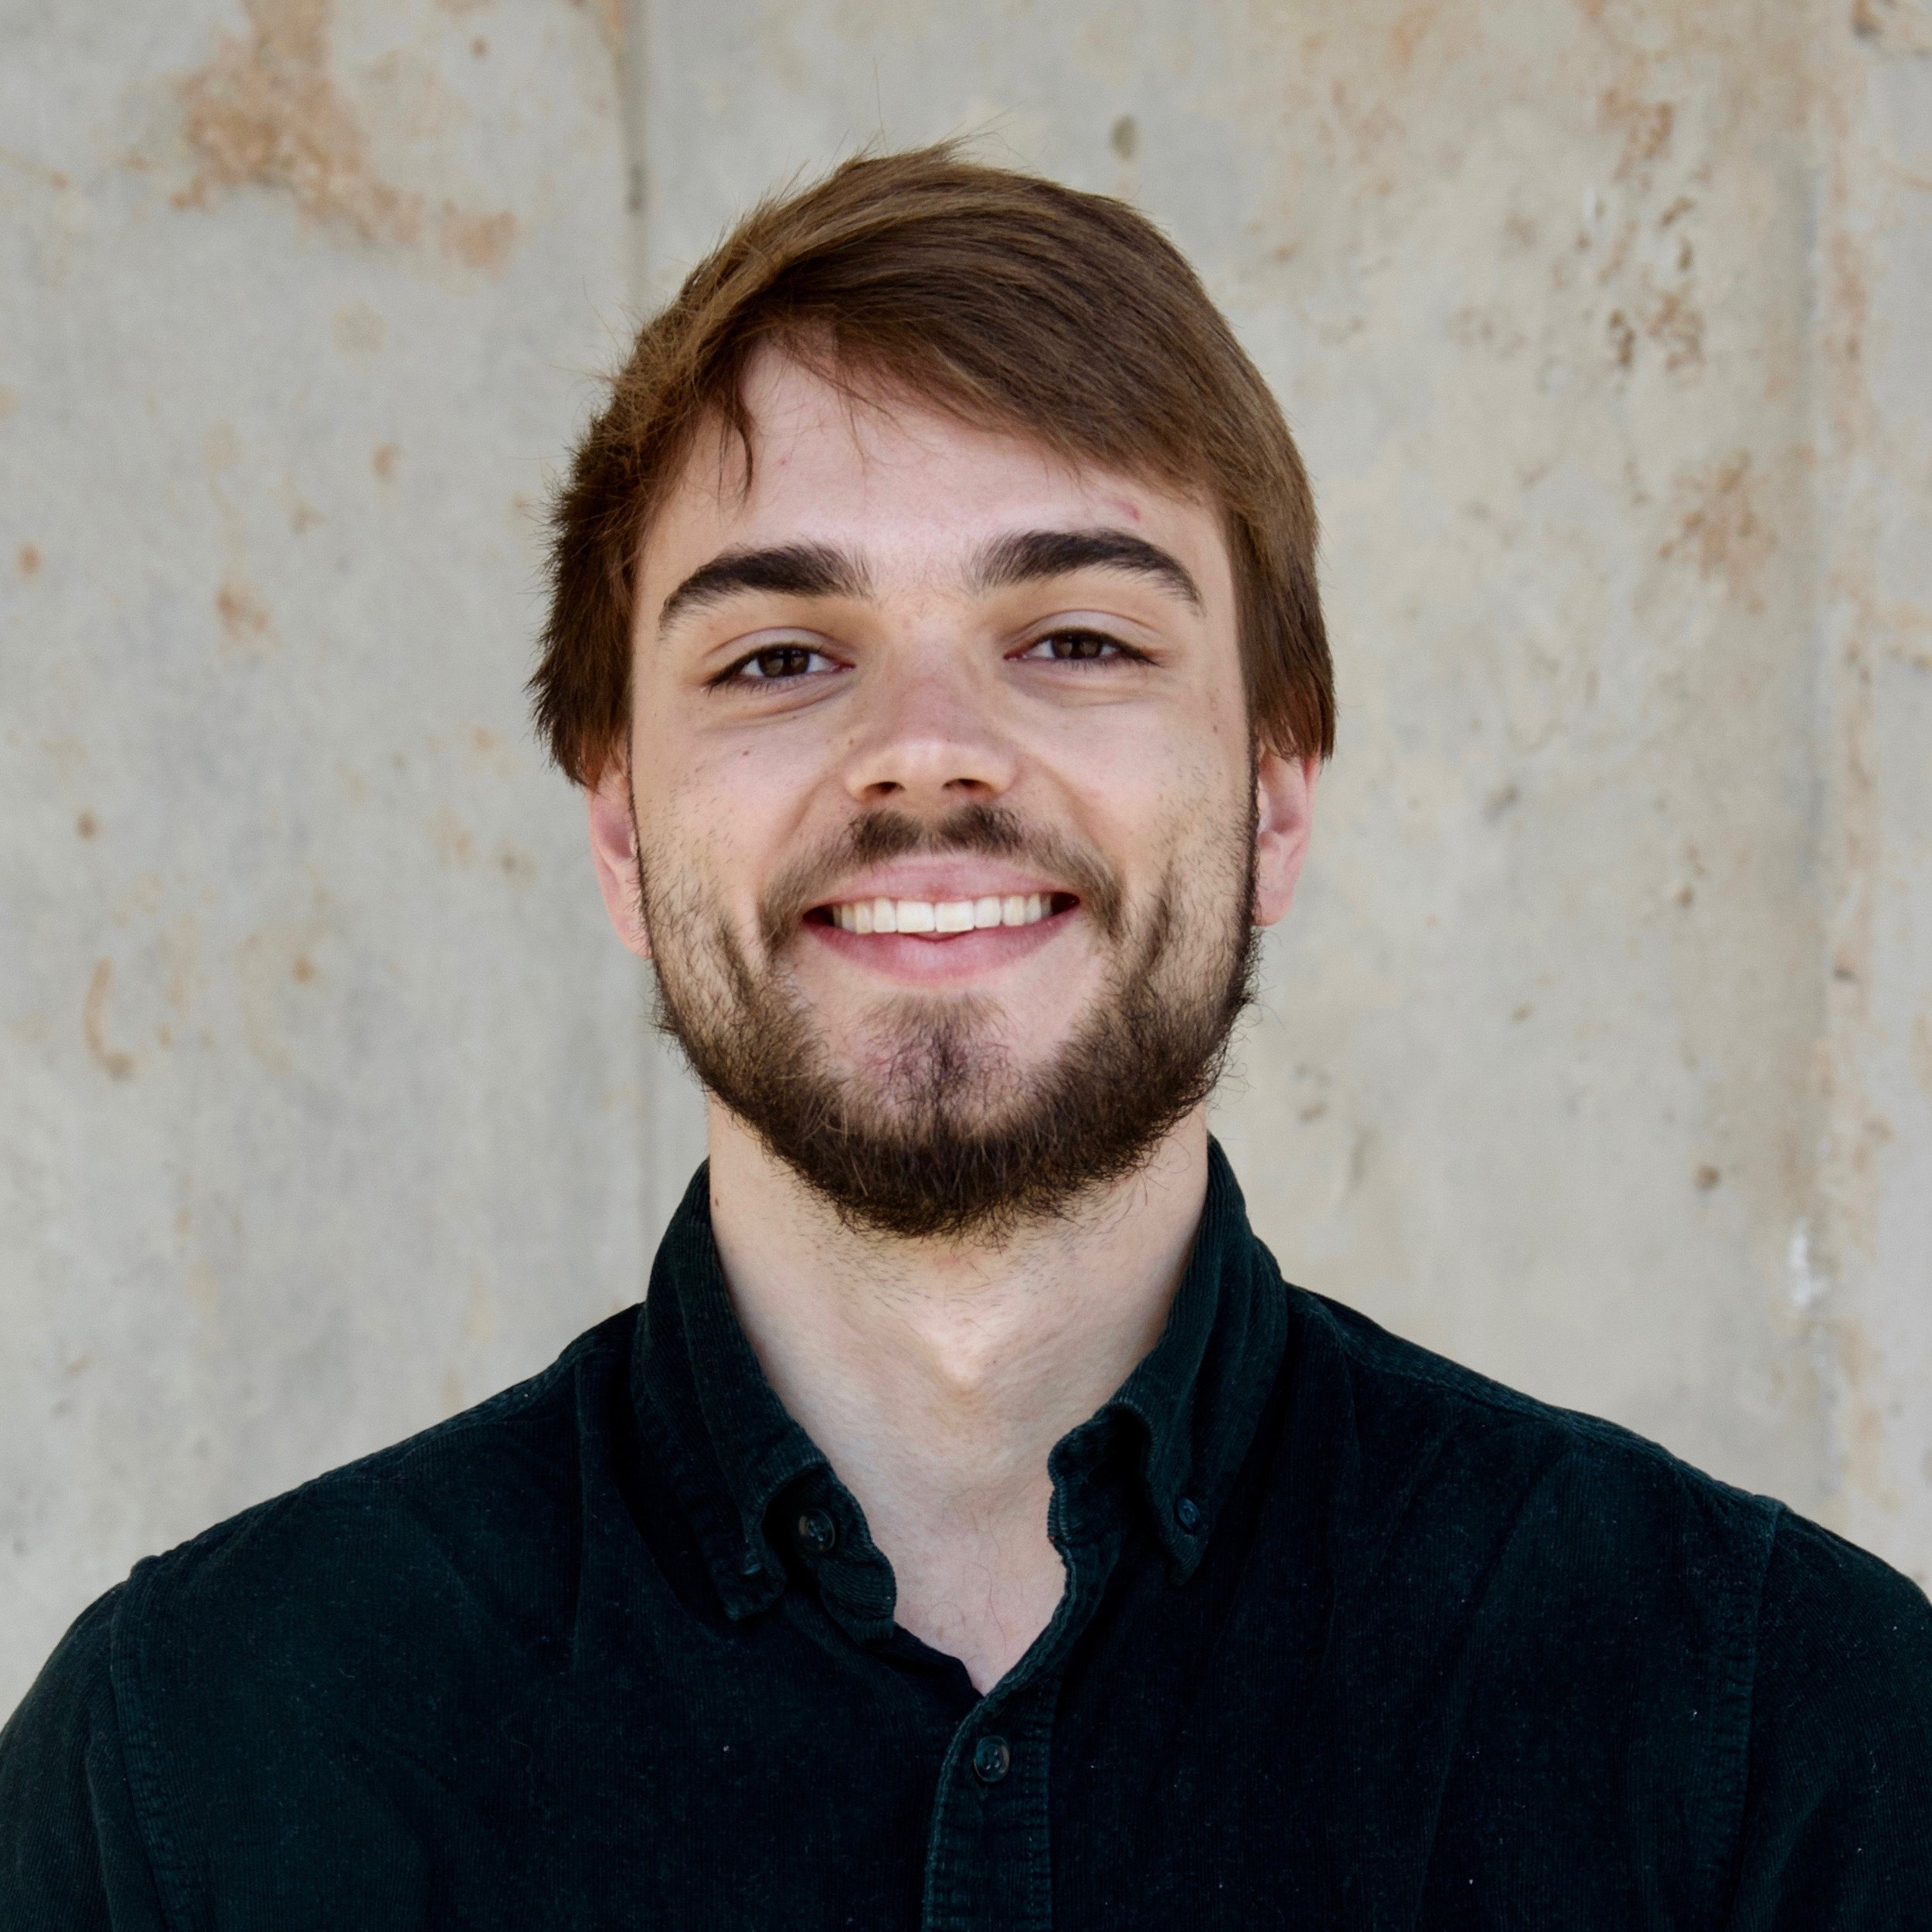 Simon Kunz   Simon holds a degree in Computer Science and has multiple years of working experience as a software engineer. Before joining mTOMADY, he has been working for social enterprises operating in the field of off-grid solar systems.